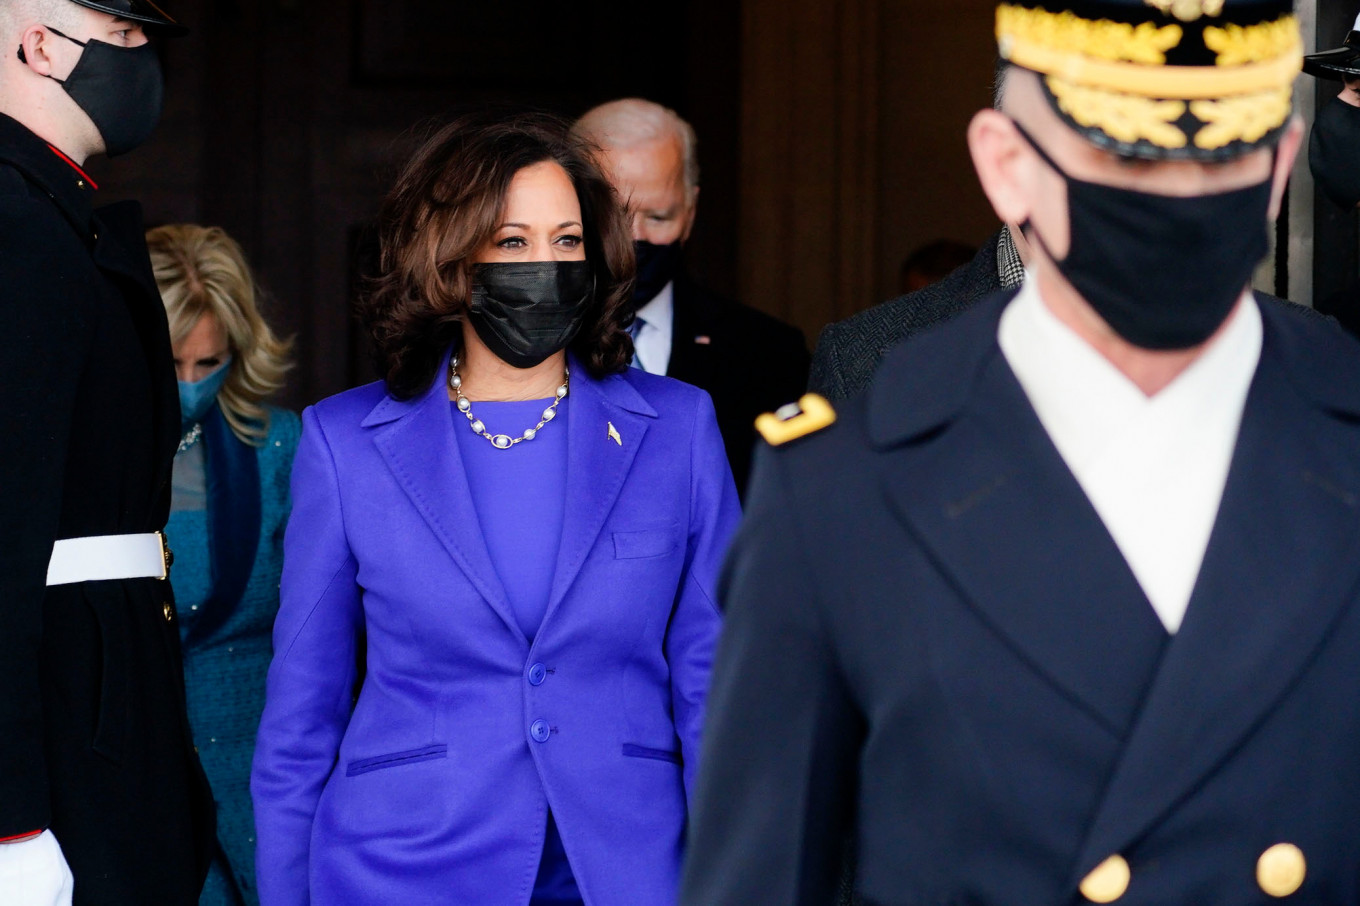 Trailblazer Kamala Harris: America's first woman vice president